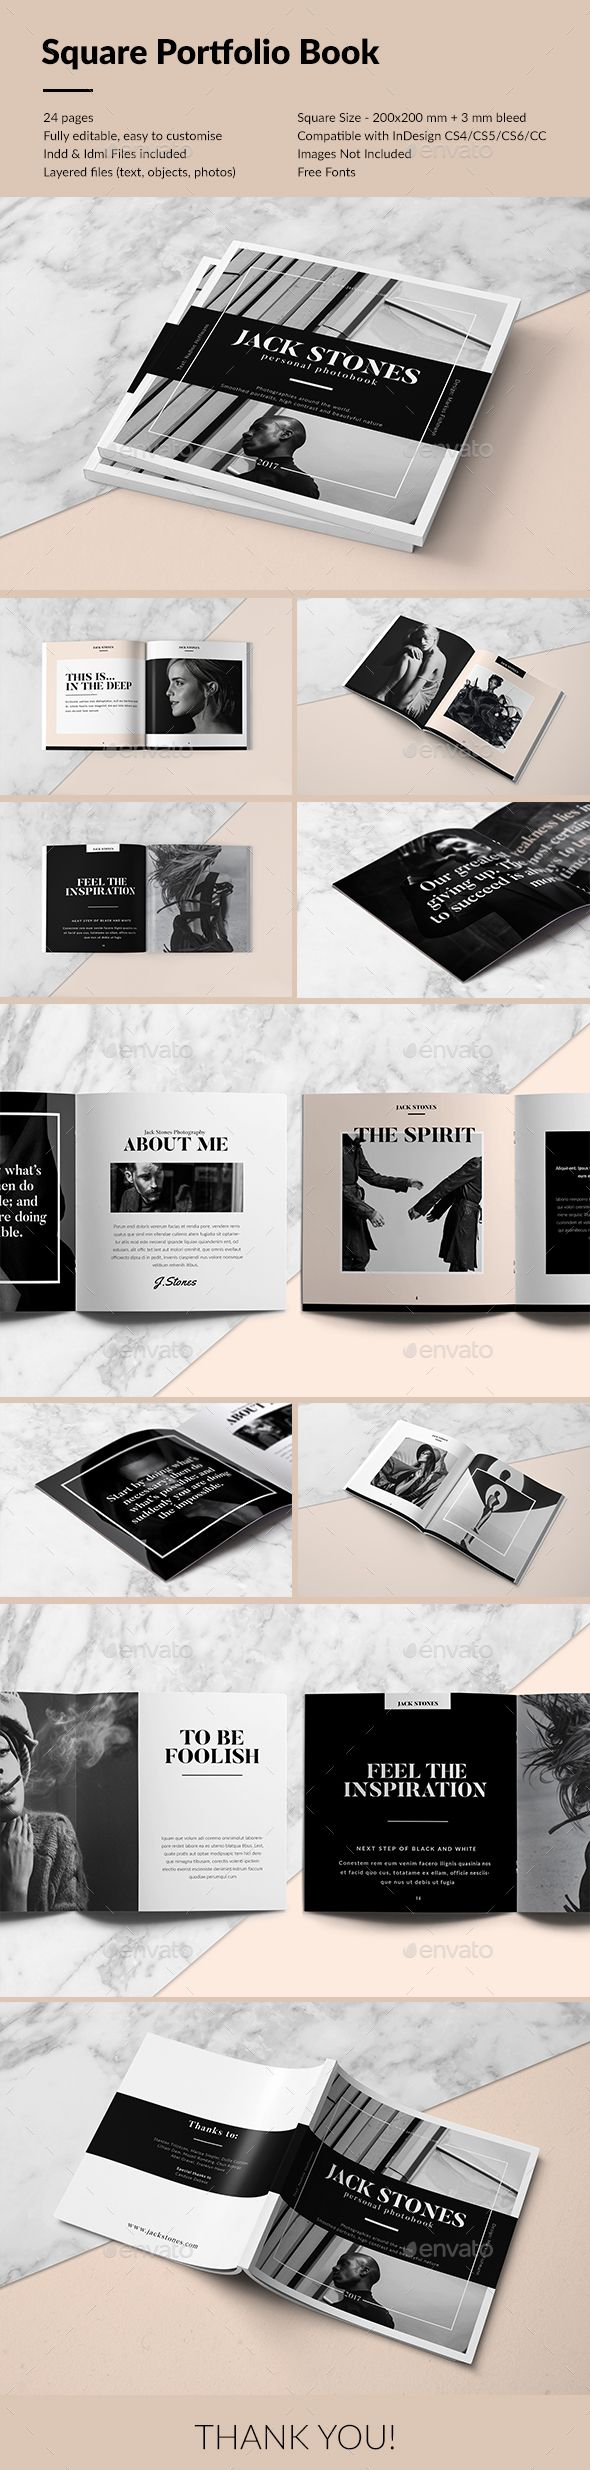 Square Portfolio Book Template InDesign INDD. Download here: http://graphicriver.net/item/square-portfolio-book/15918450?ref=ksioks